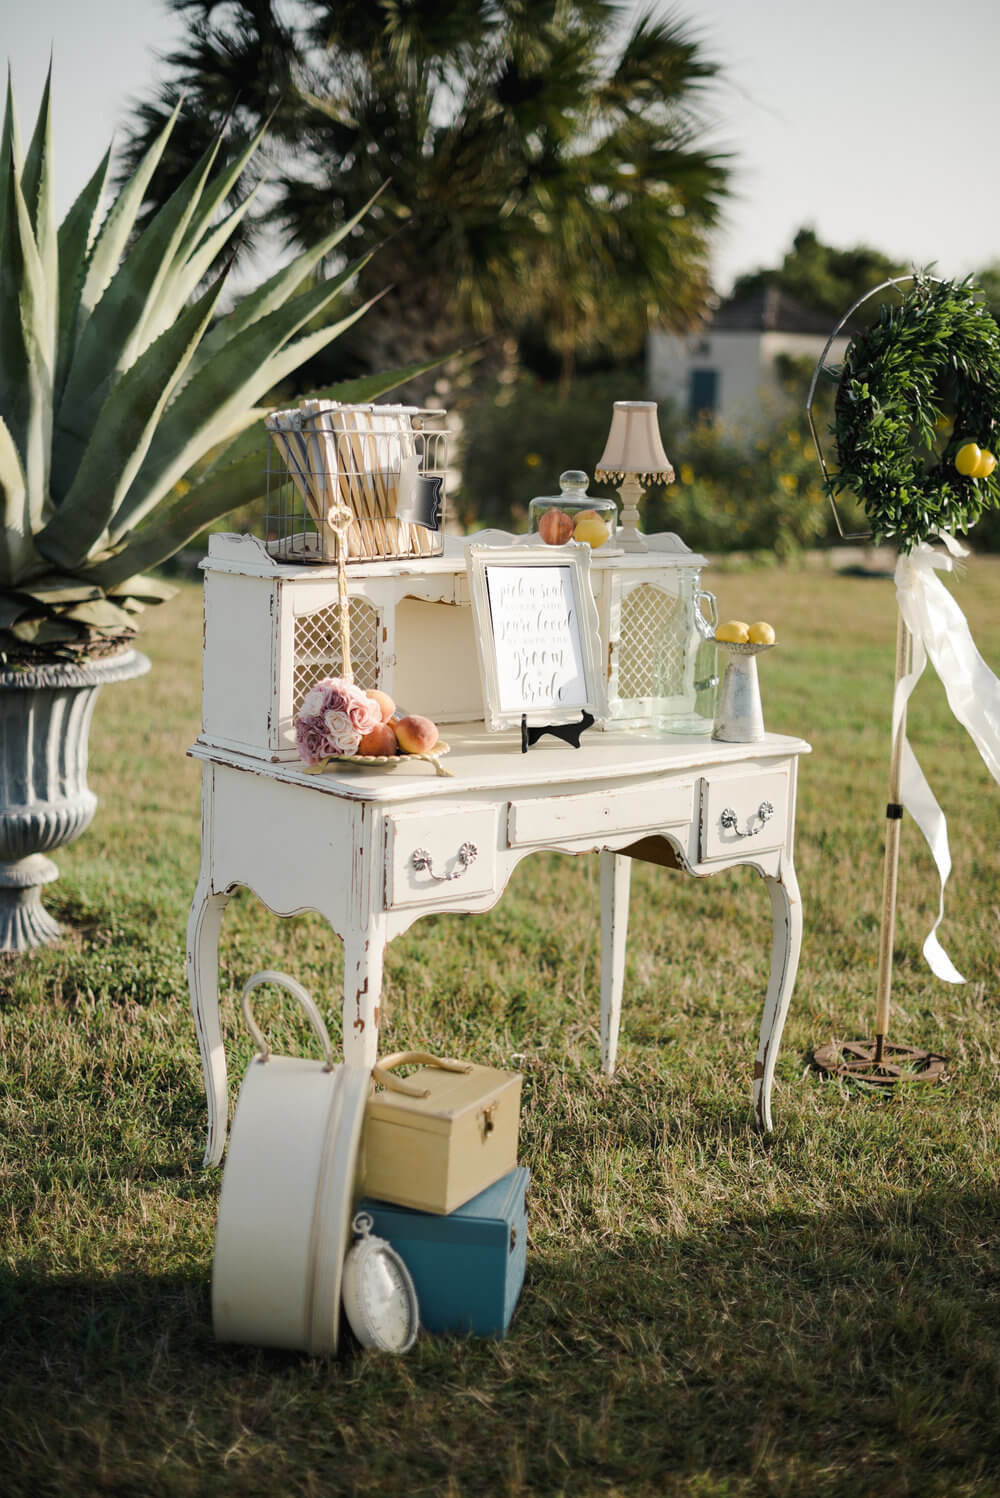 French country wedding inspiration vintage desk with antique suitcases, fans, and ceremony programs.